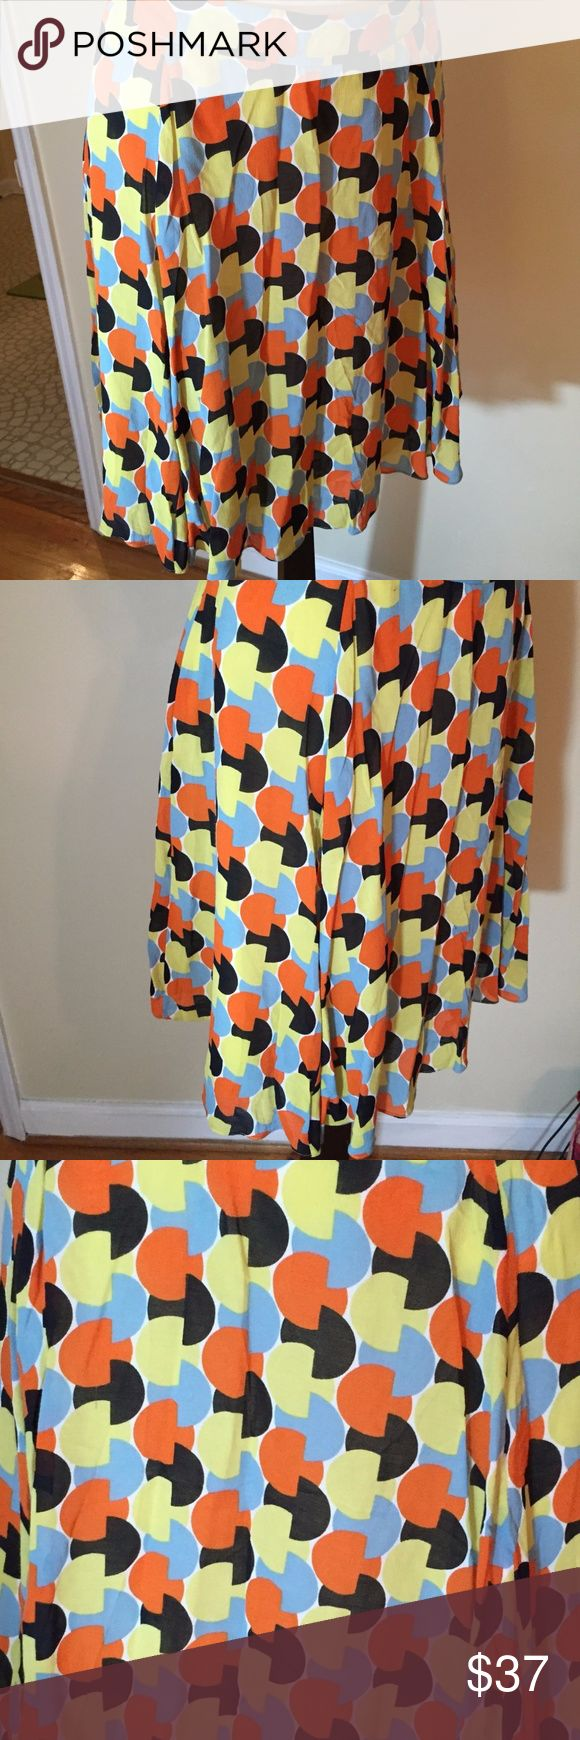 """Semantiks L Silk Graphic Print Orange Blue & Brown Great skirt from Sematiks (Nordstrom) in a graphic mod print of acid yellow, coral, robins egg blue, and chocolate brown. Relaxed a-line (almost circle) skirt has a 1.5"""" wide waistband. Fully lined.  BRAND:  SEMANTIKS STYLE:  Above the knee, full.  MEASUREMENTS. The skirt is a size L. Measurements are taken with item laying flat.            WAIST:      38"""" HIPS:         +46"""" LENGTH:  22"""" SWEEP:    +53 (free)  FABRIC. 75% Silk/ 23% Cotton…"""